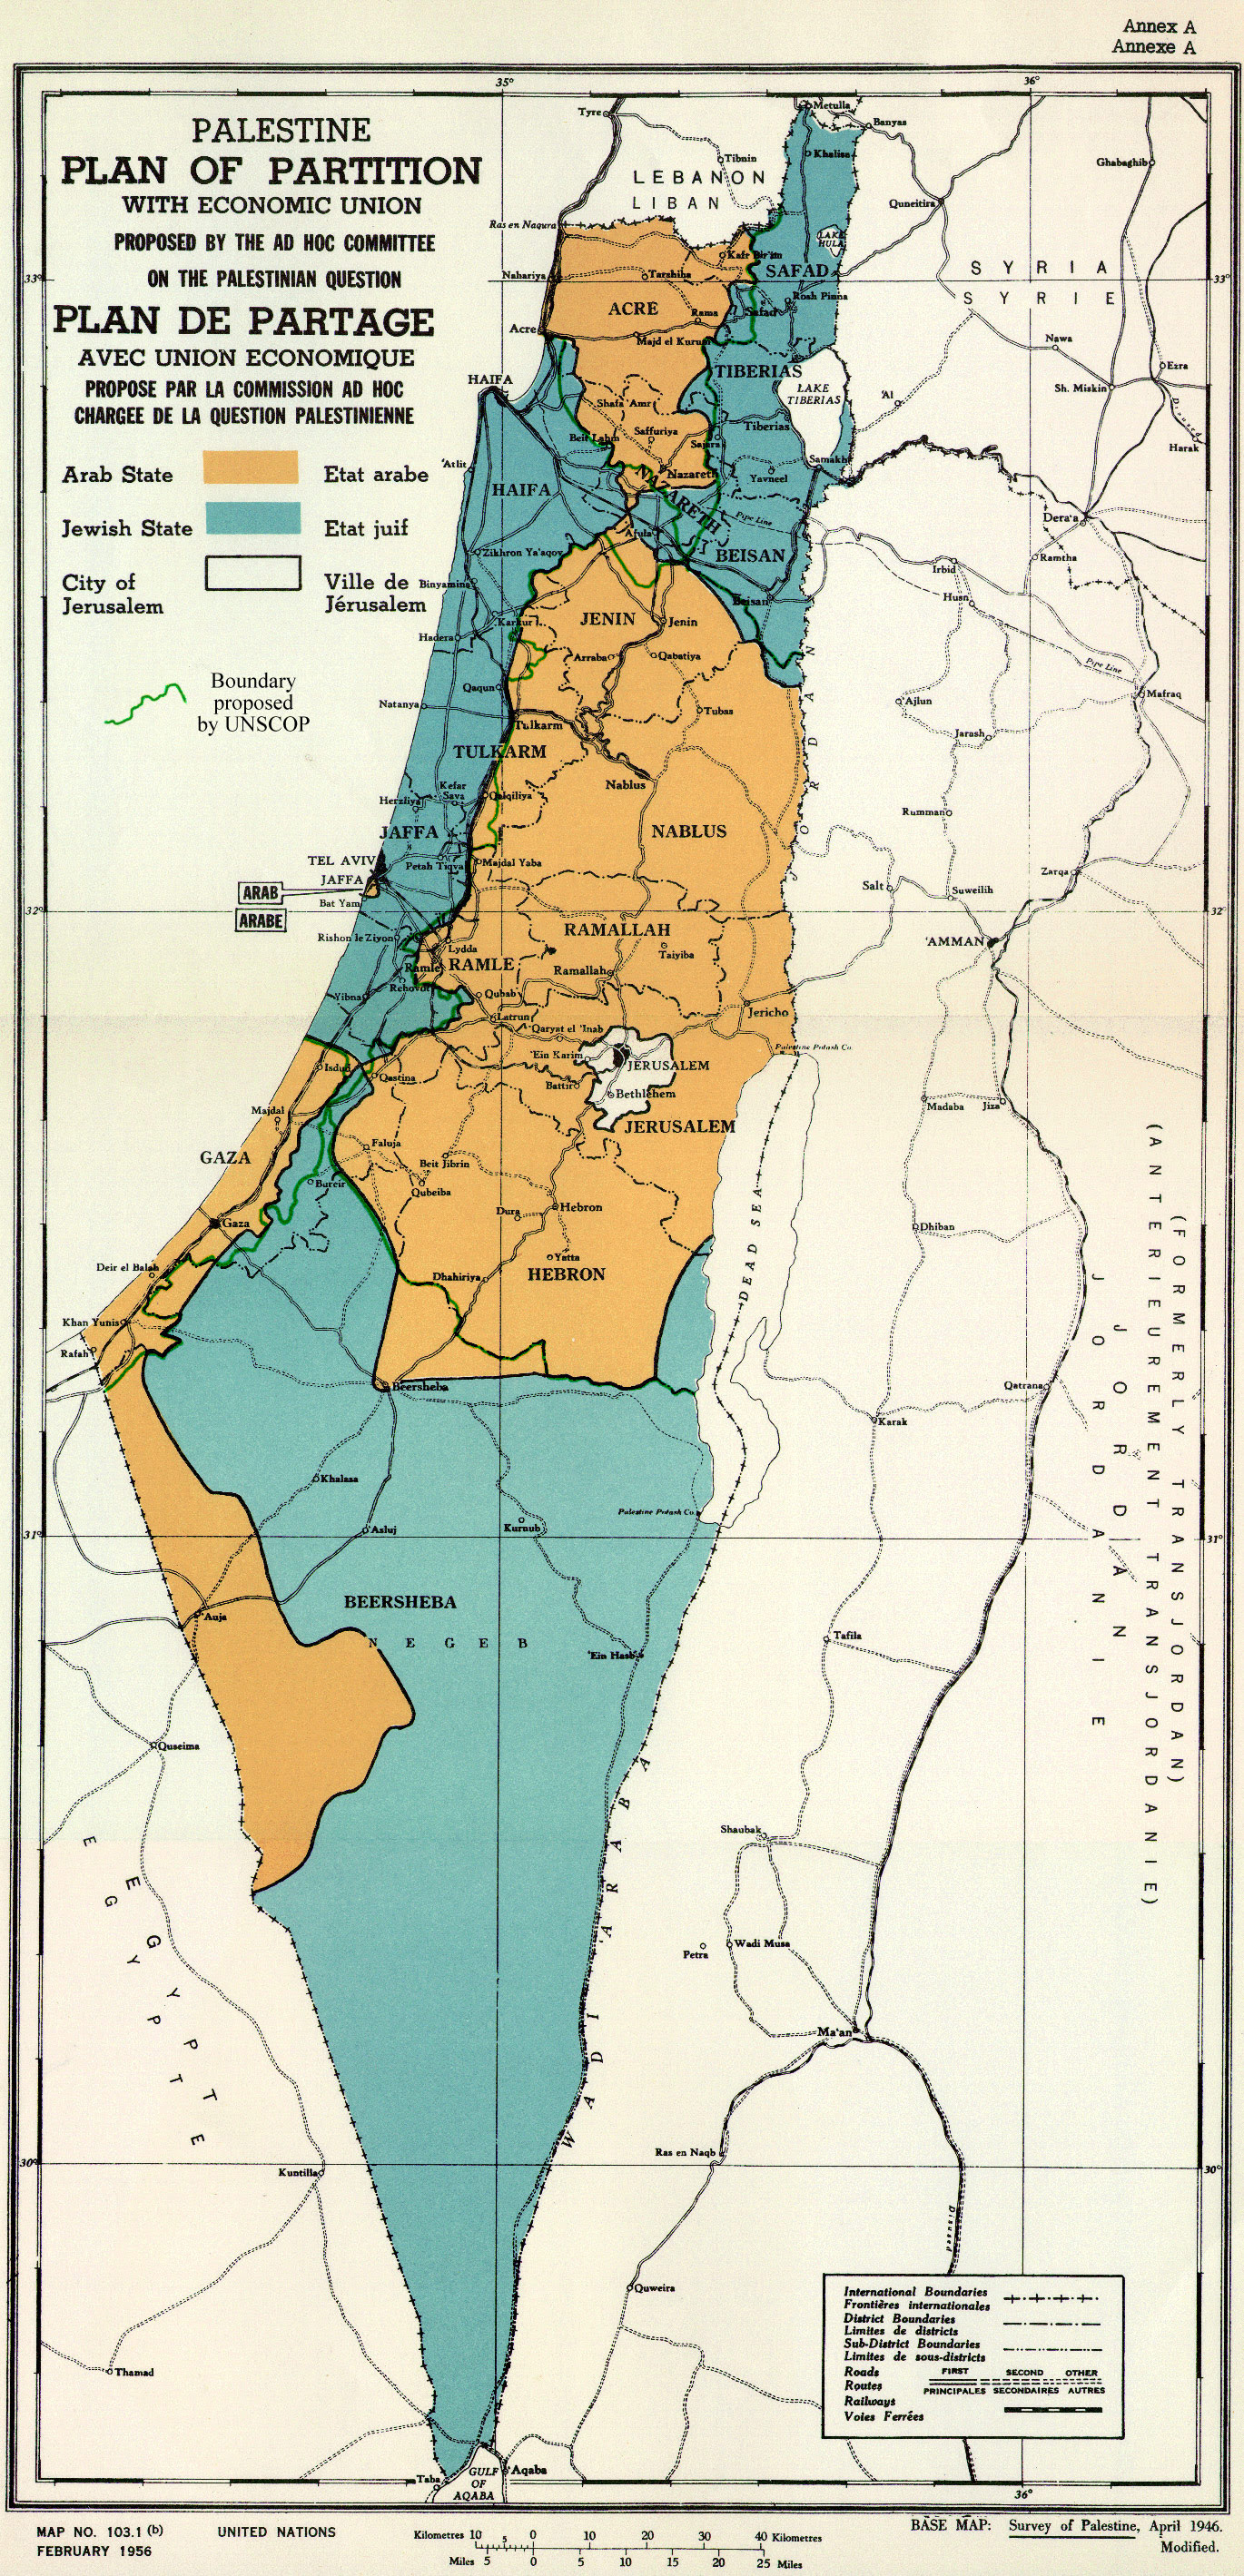 http://upload.wikimedia.org/wikipedia/commons/b/bd/UN_Palestine_Partition_Versions_1947.jpg